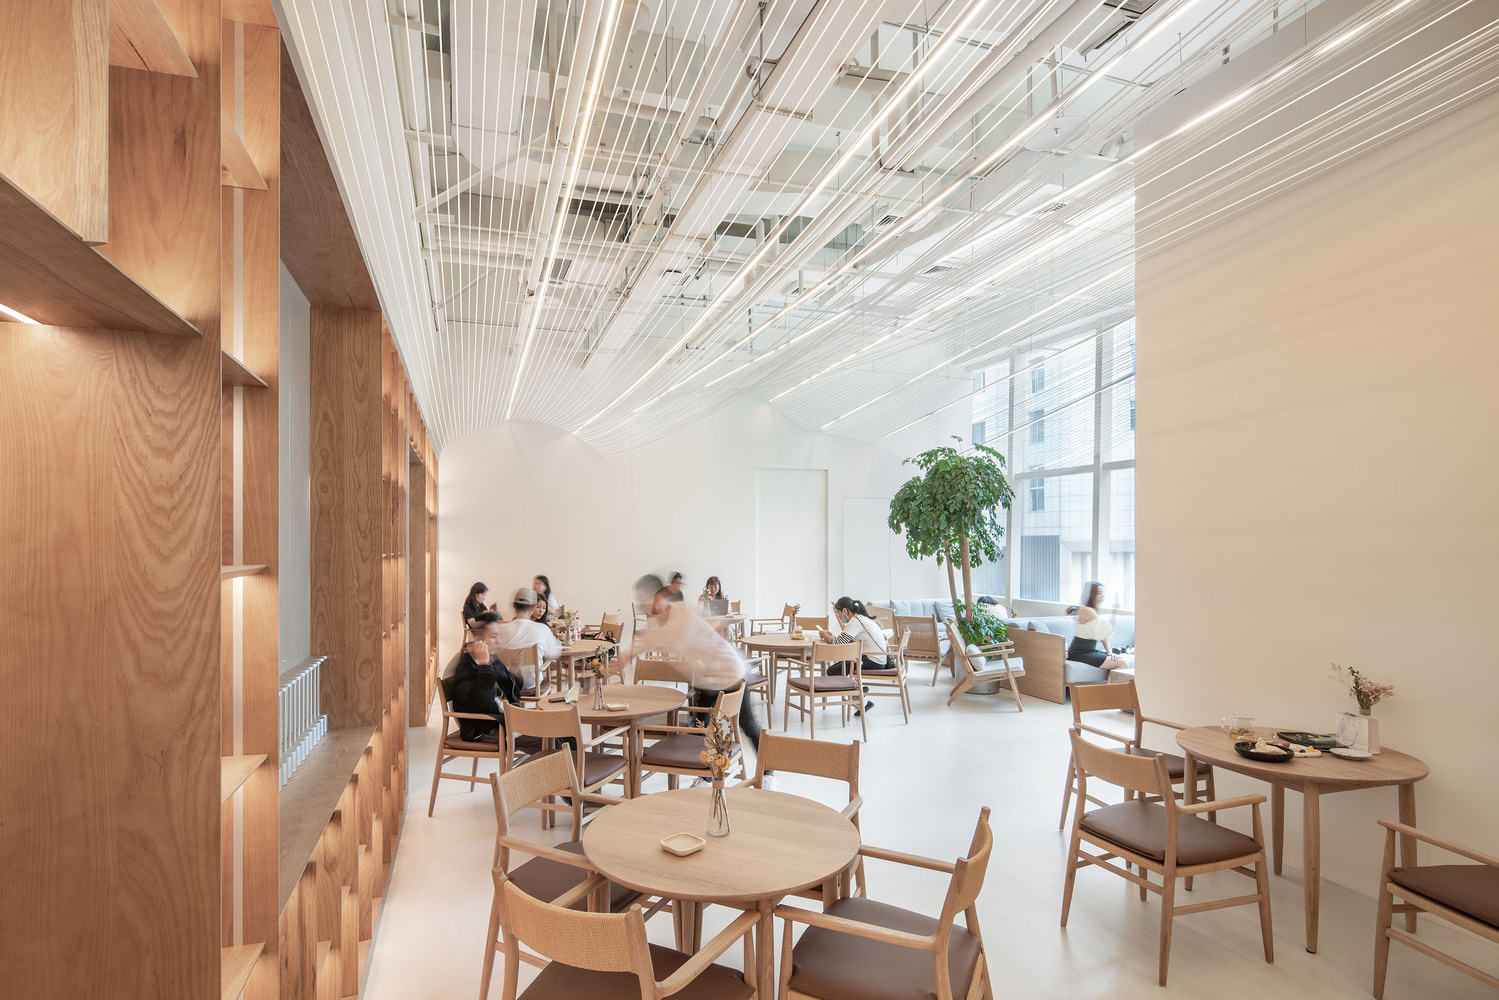 50_Functions_of_bookstore___coffee__afternoon_tea__bar__and_restaurant_under_the_same_big_roof_%C2%A9_Yu_Bai.jpg